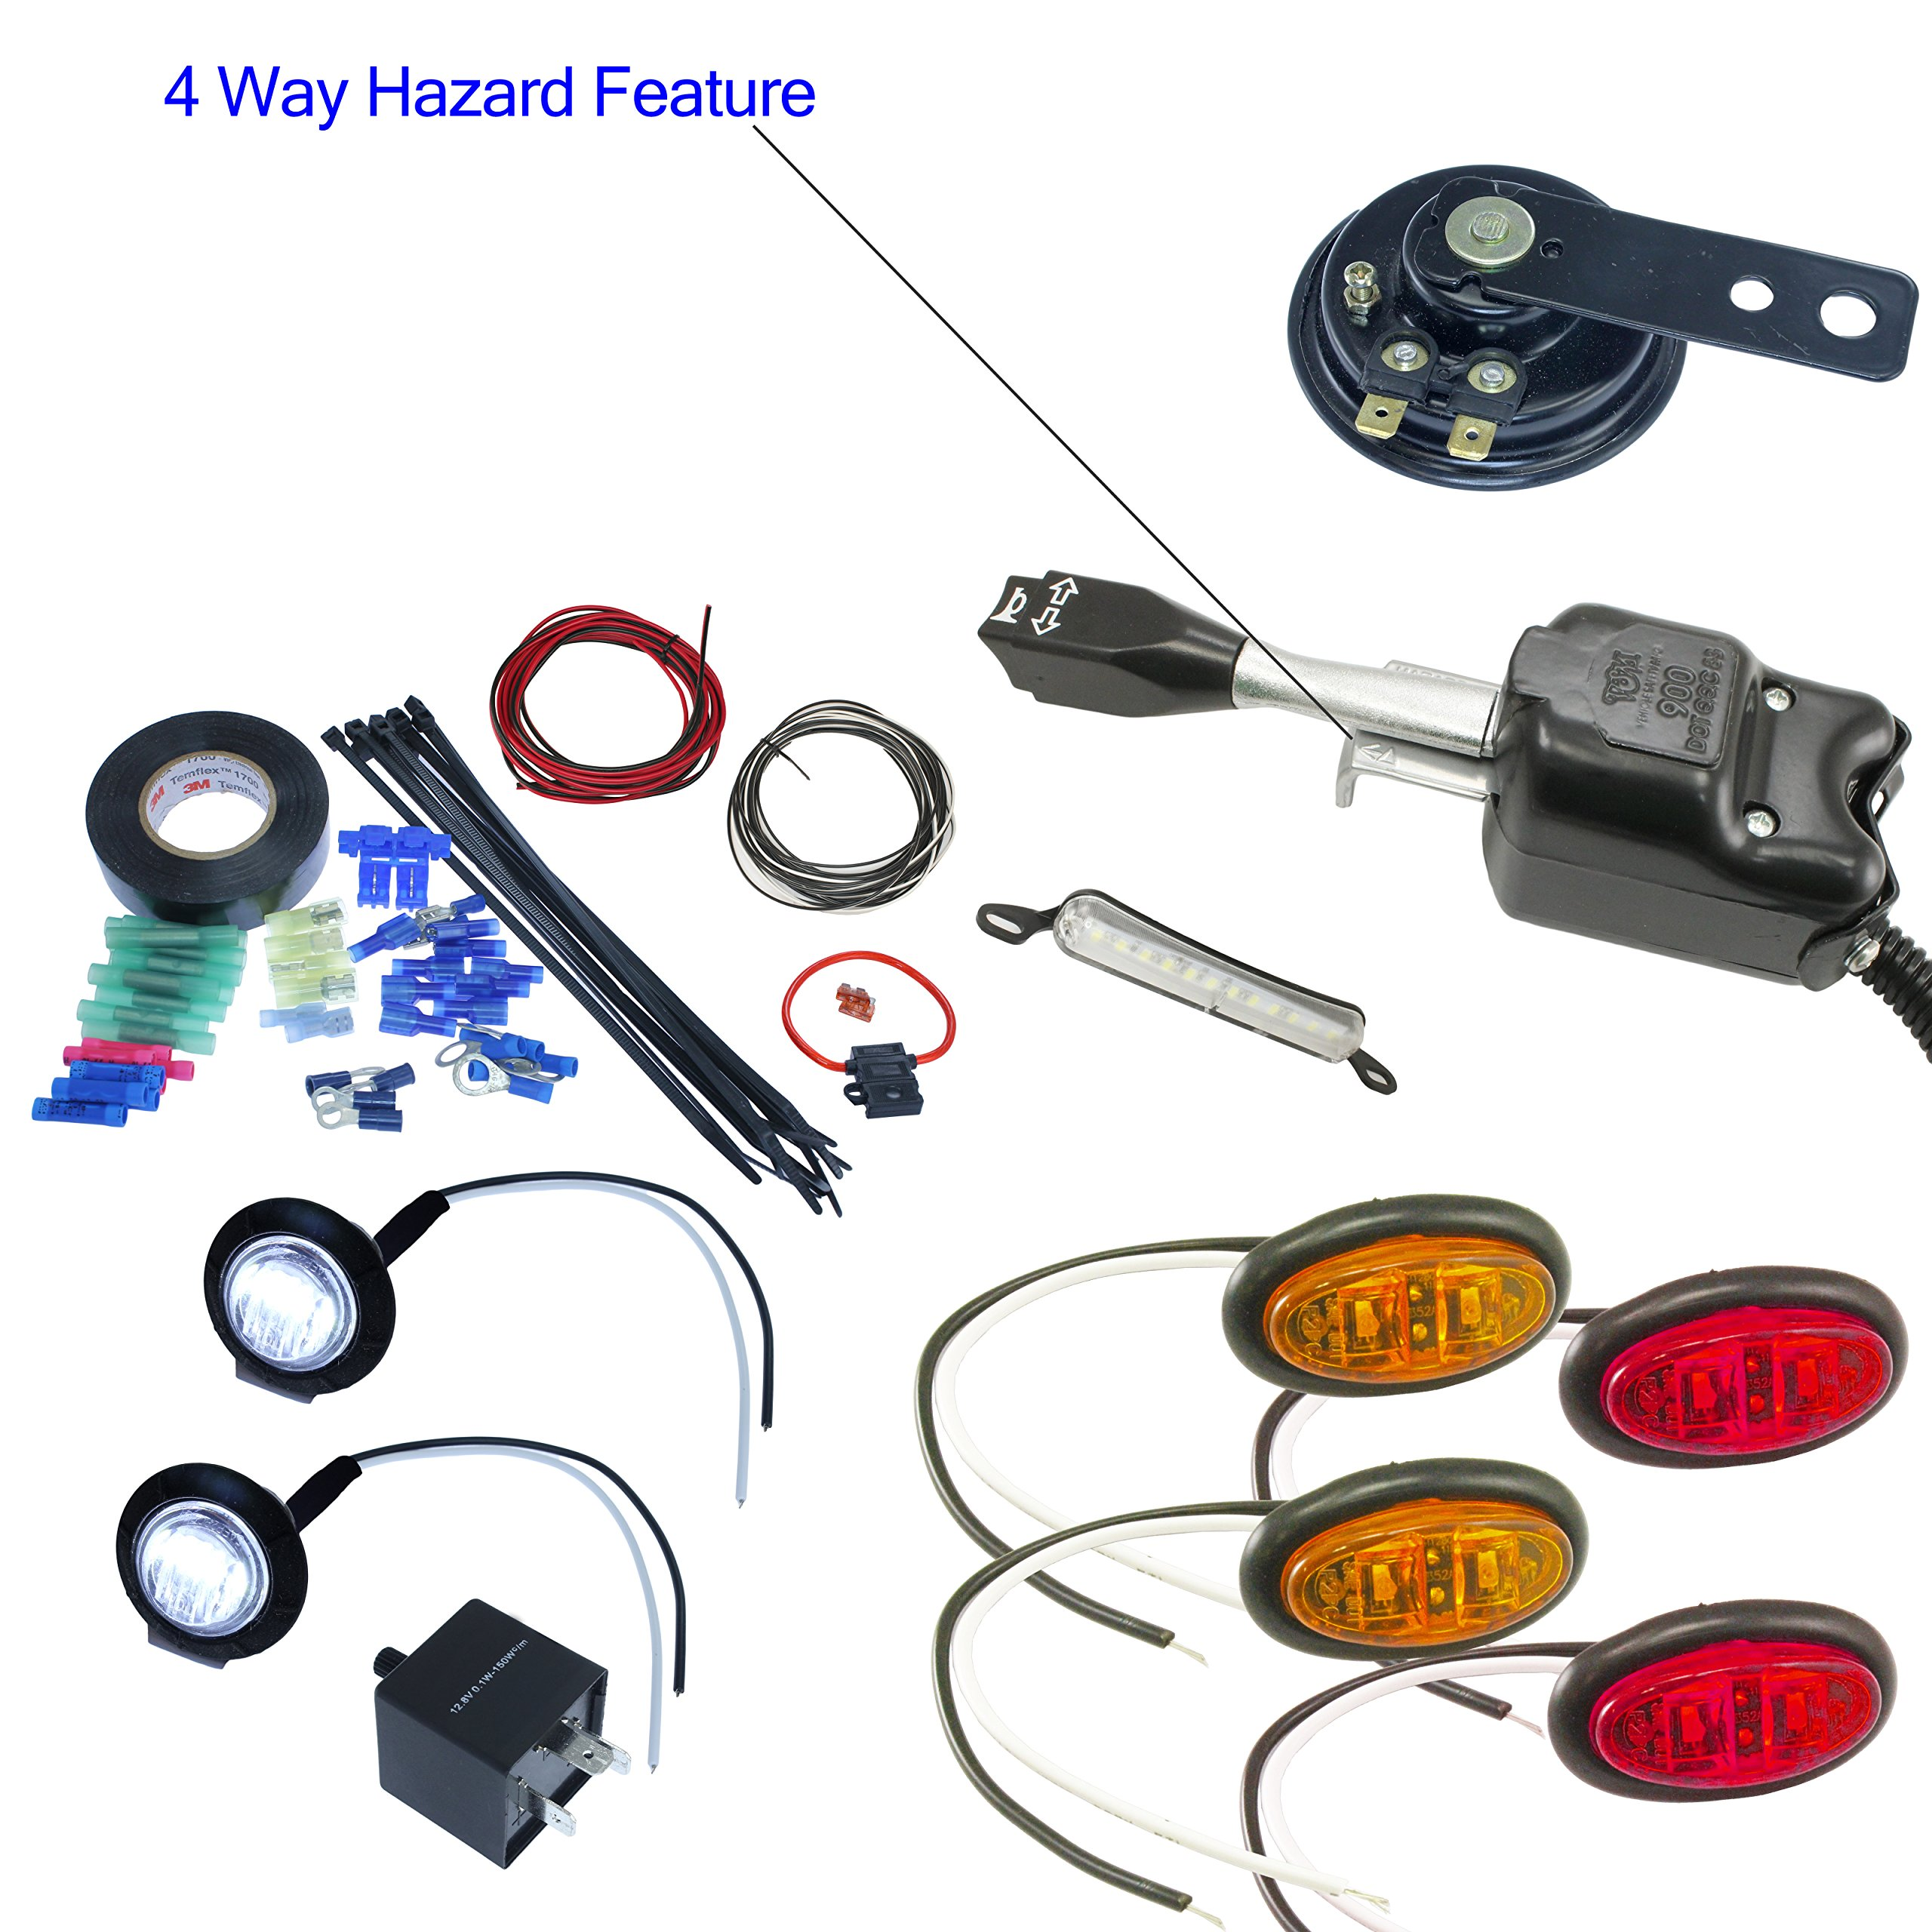 UTV Heavy Duty Lever Turn Signal Kit with Horn and Hardware Kit (Oval: 2 Amber, 2 Red)